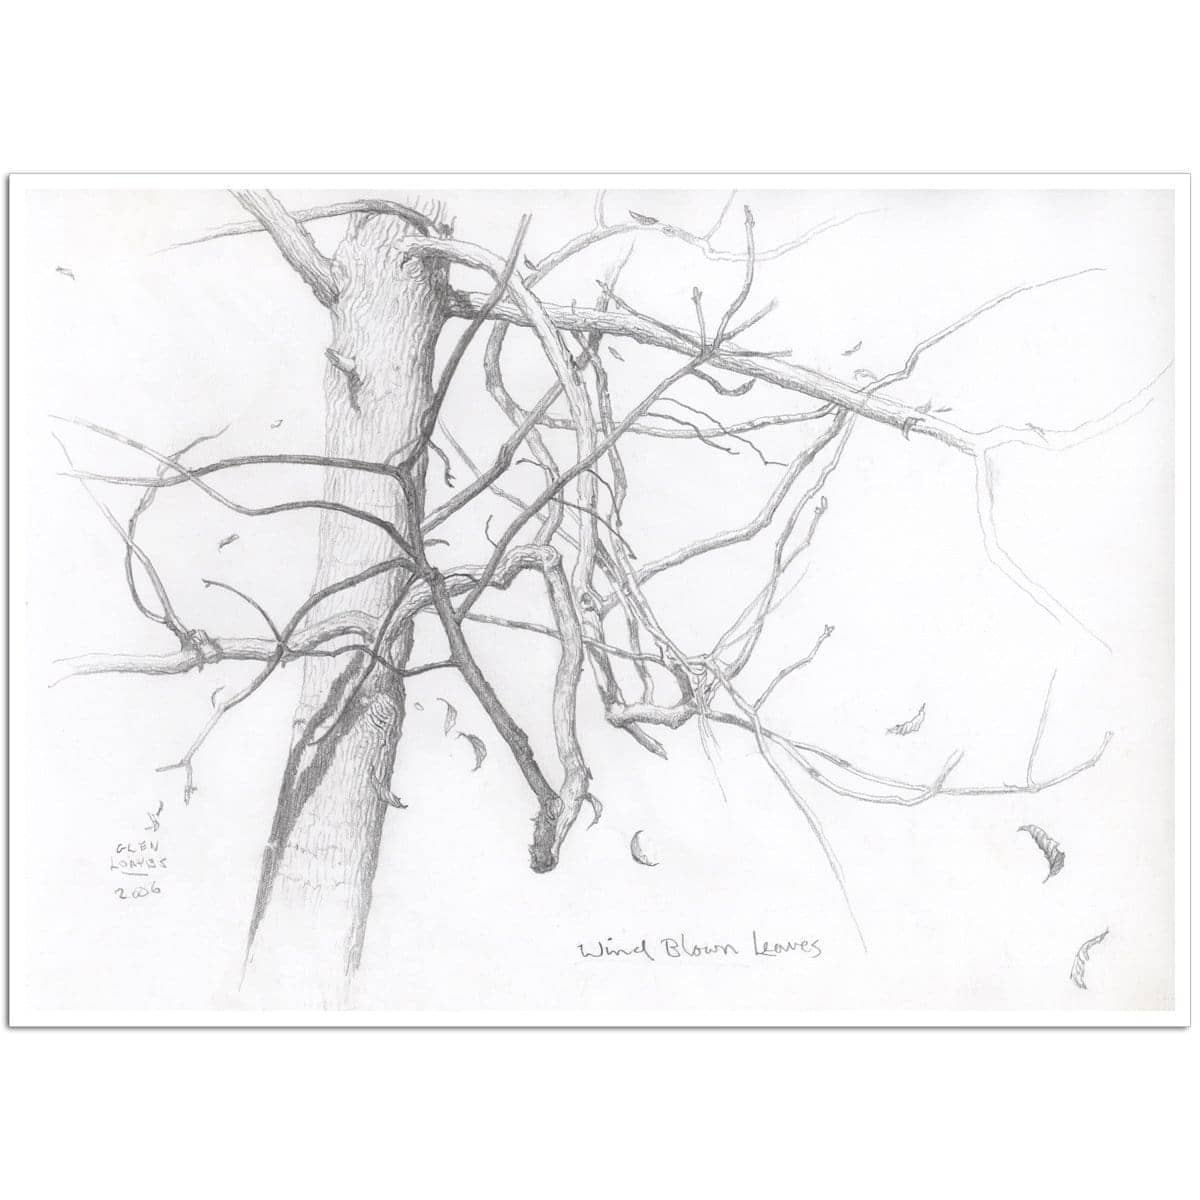 Wind Blown Leaves - Art Print by Glen Loates from the Glen Loates Store